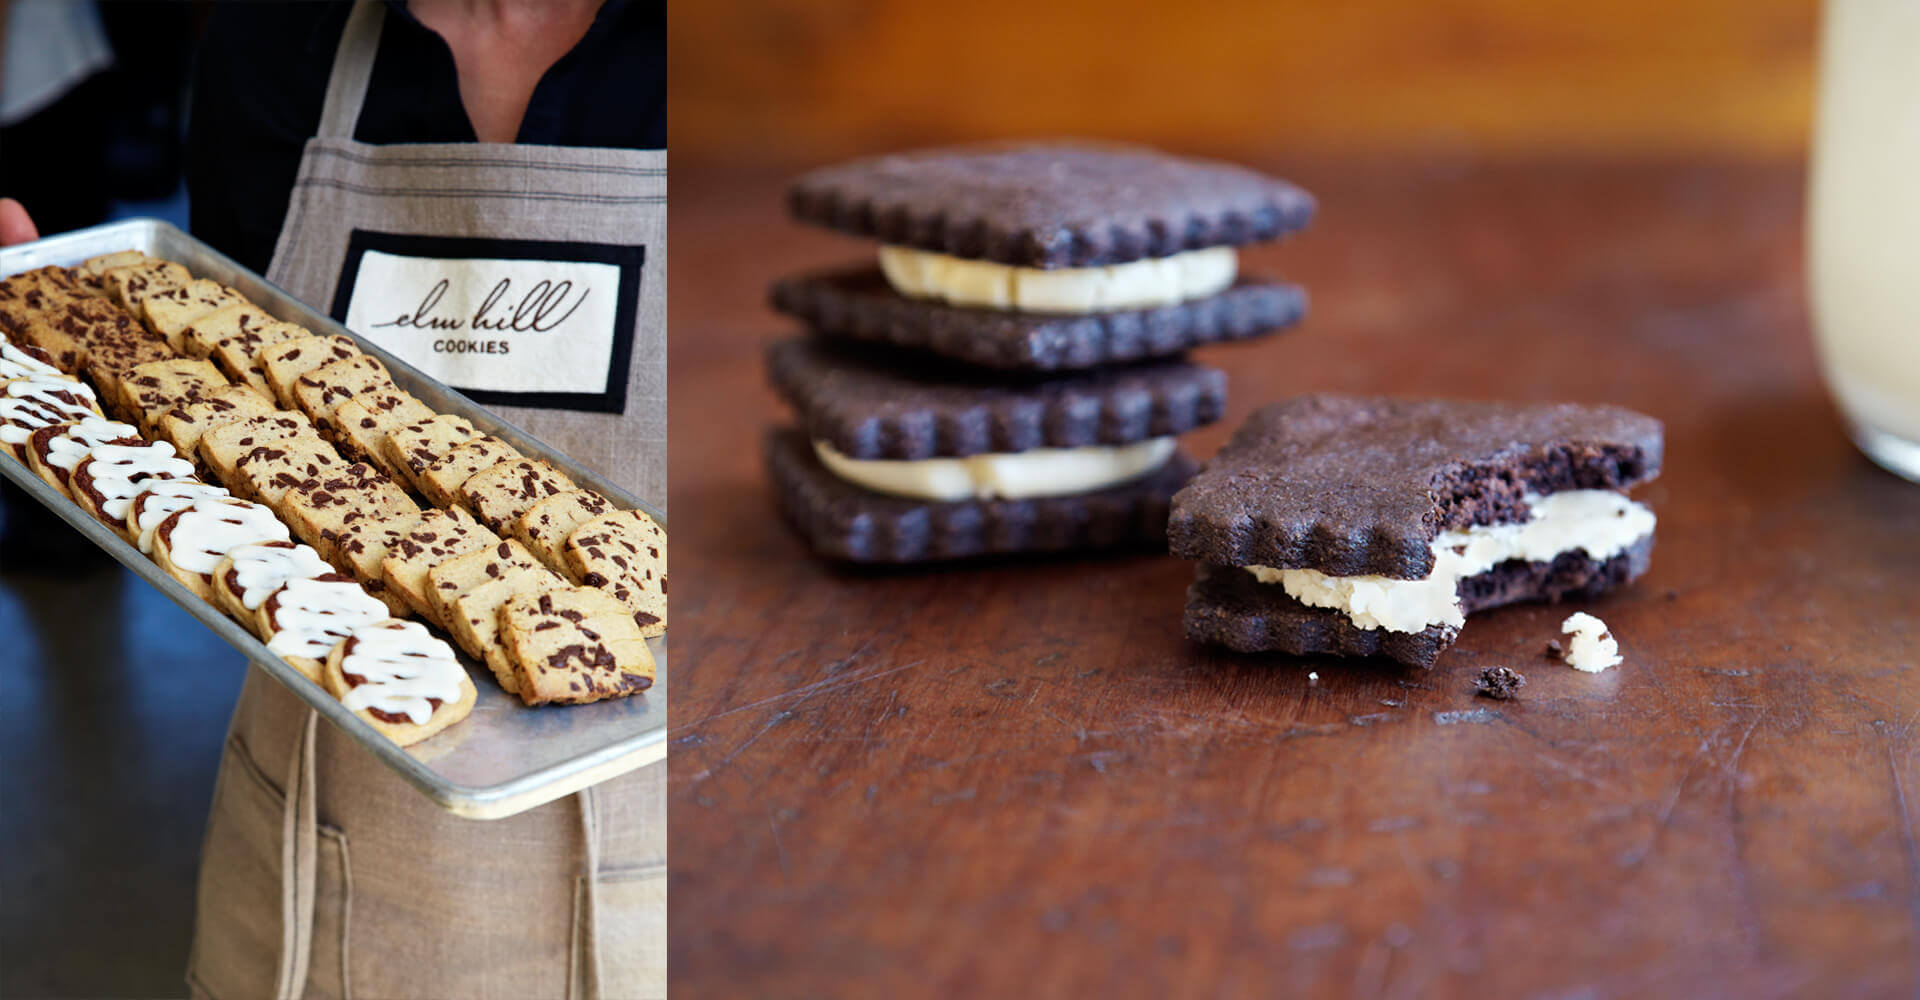 Elm Hill Cookies